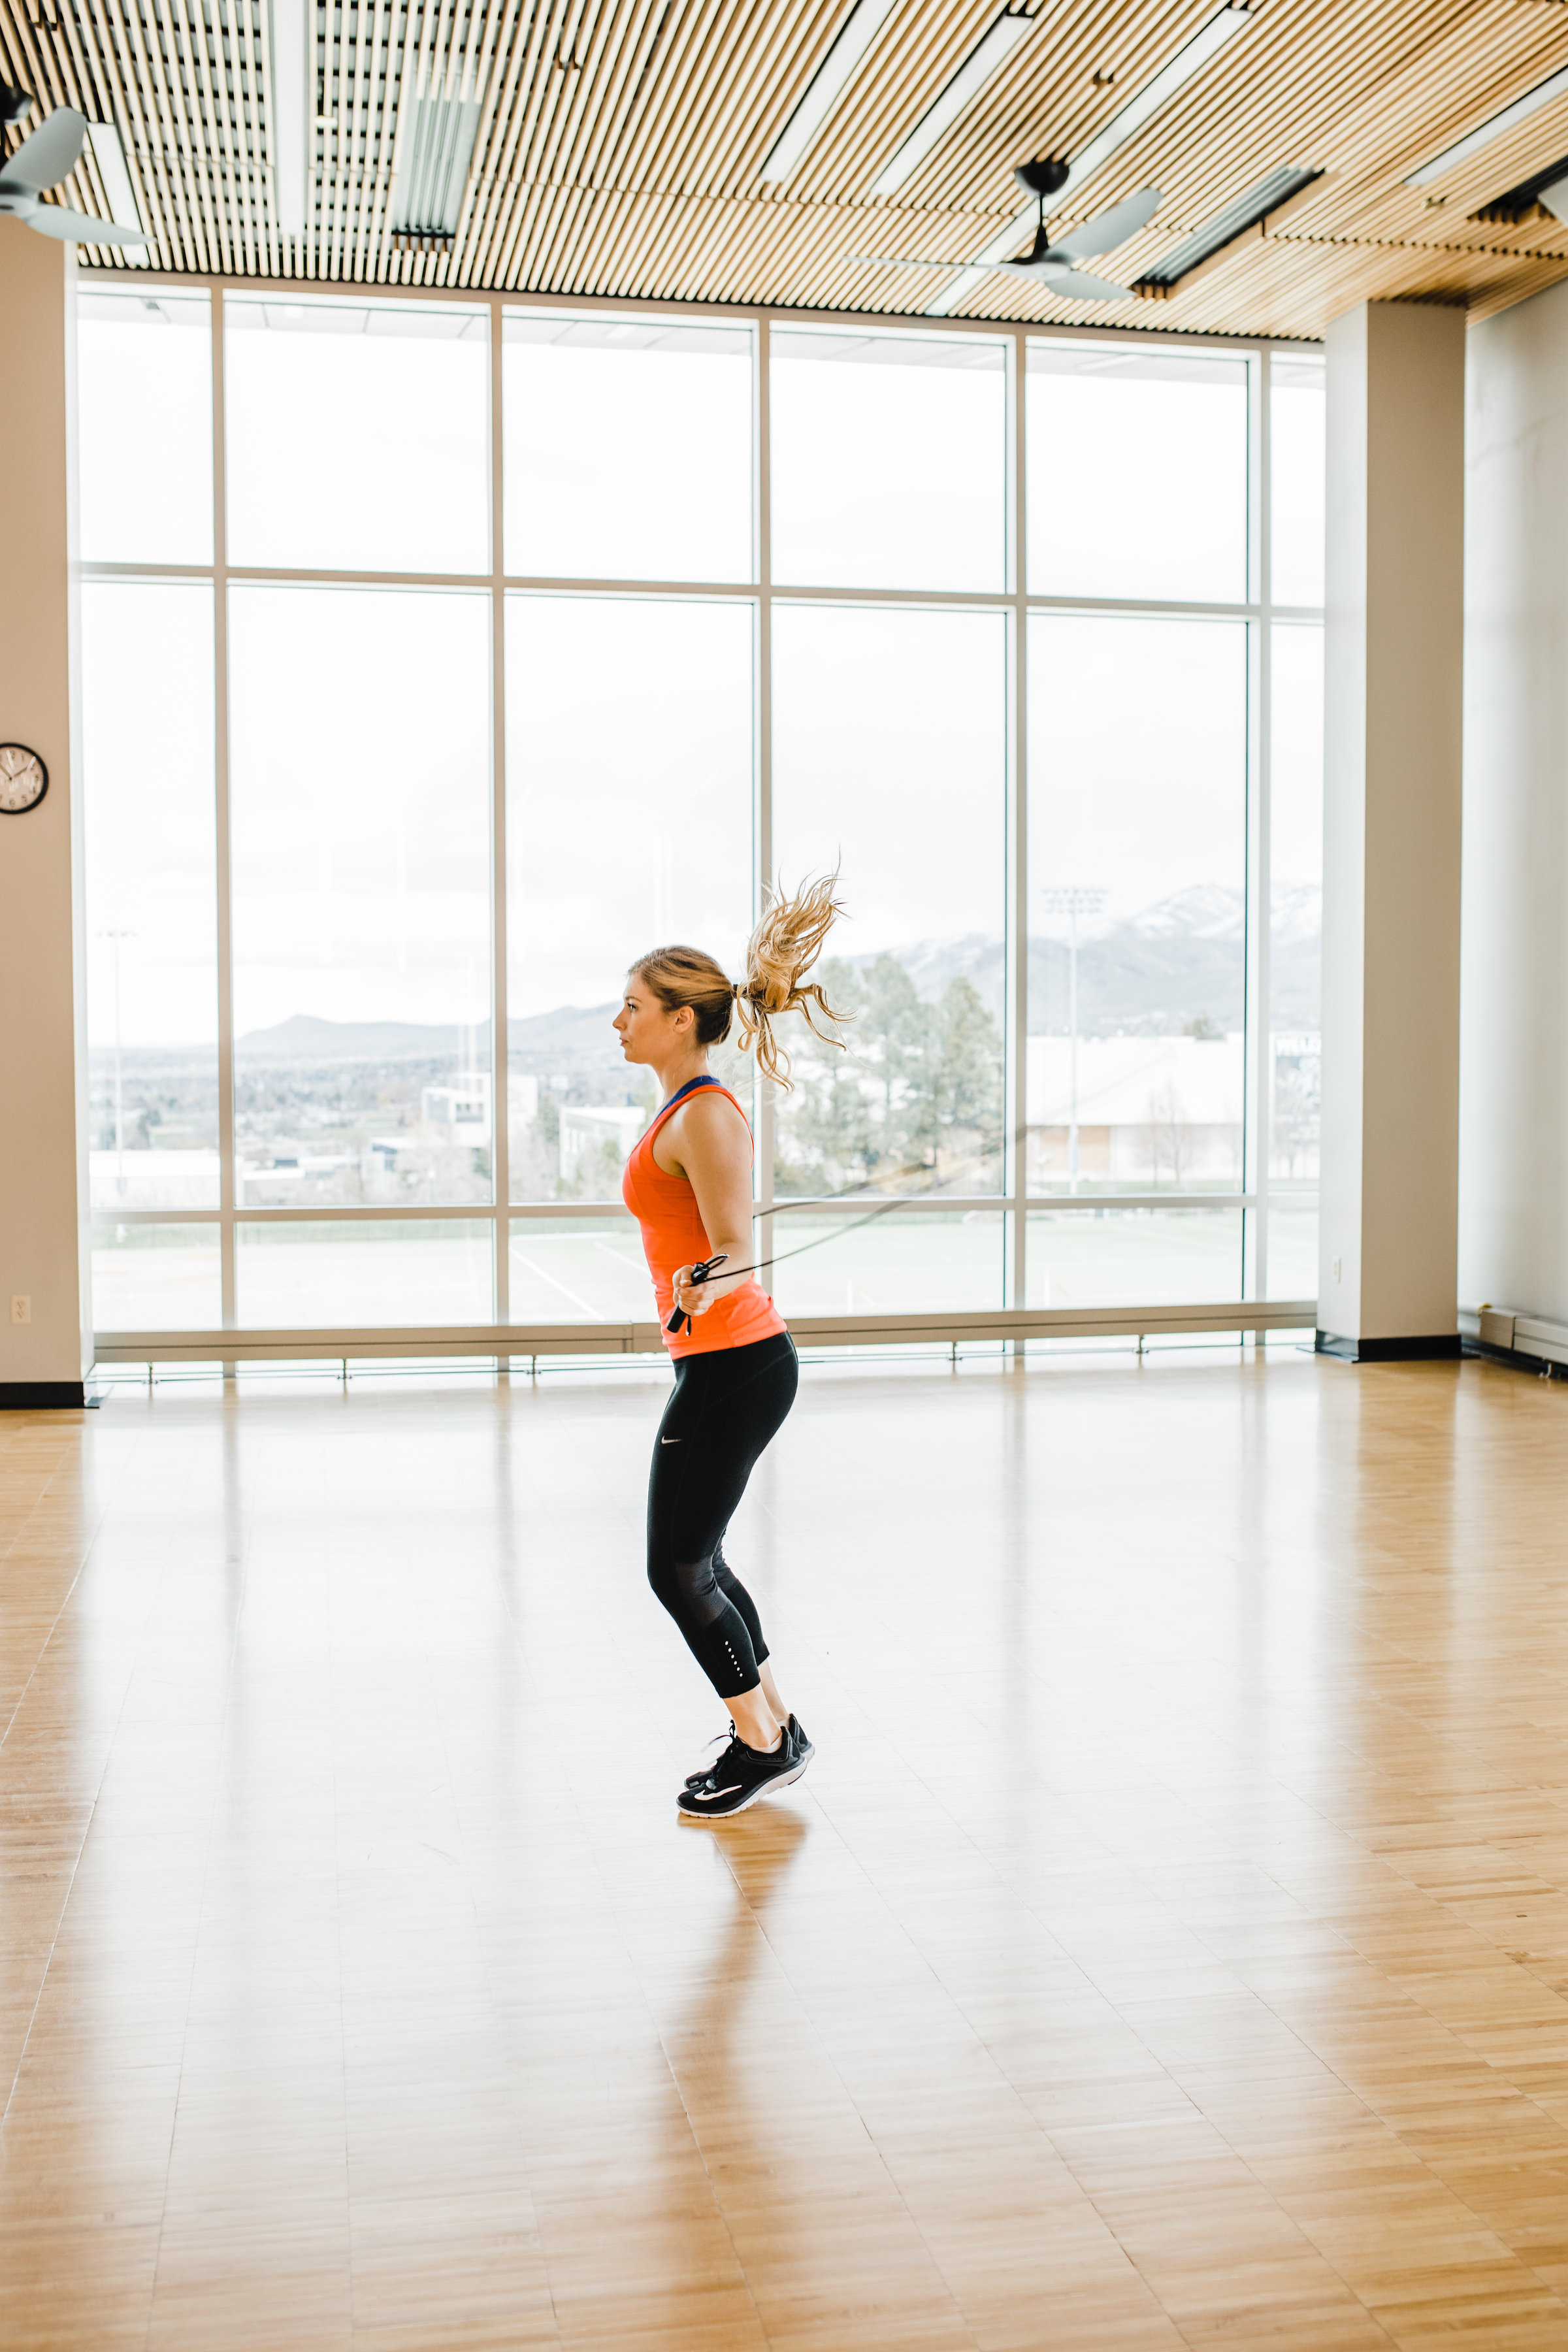 Benefits of Jumping Rope & Reasons Why You Should Consider Adding it to Your Fitness Program